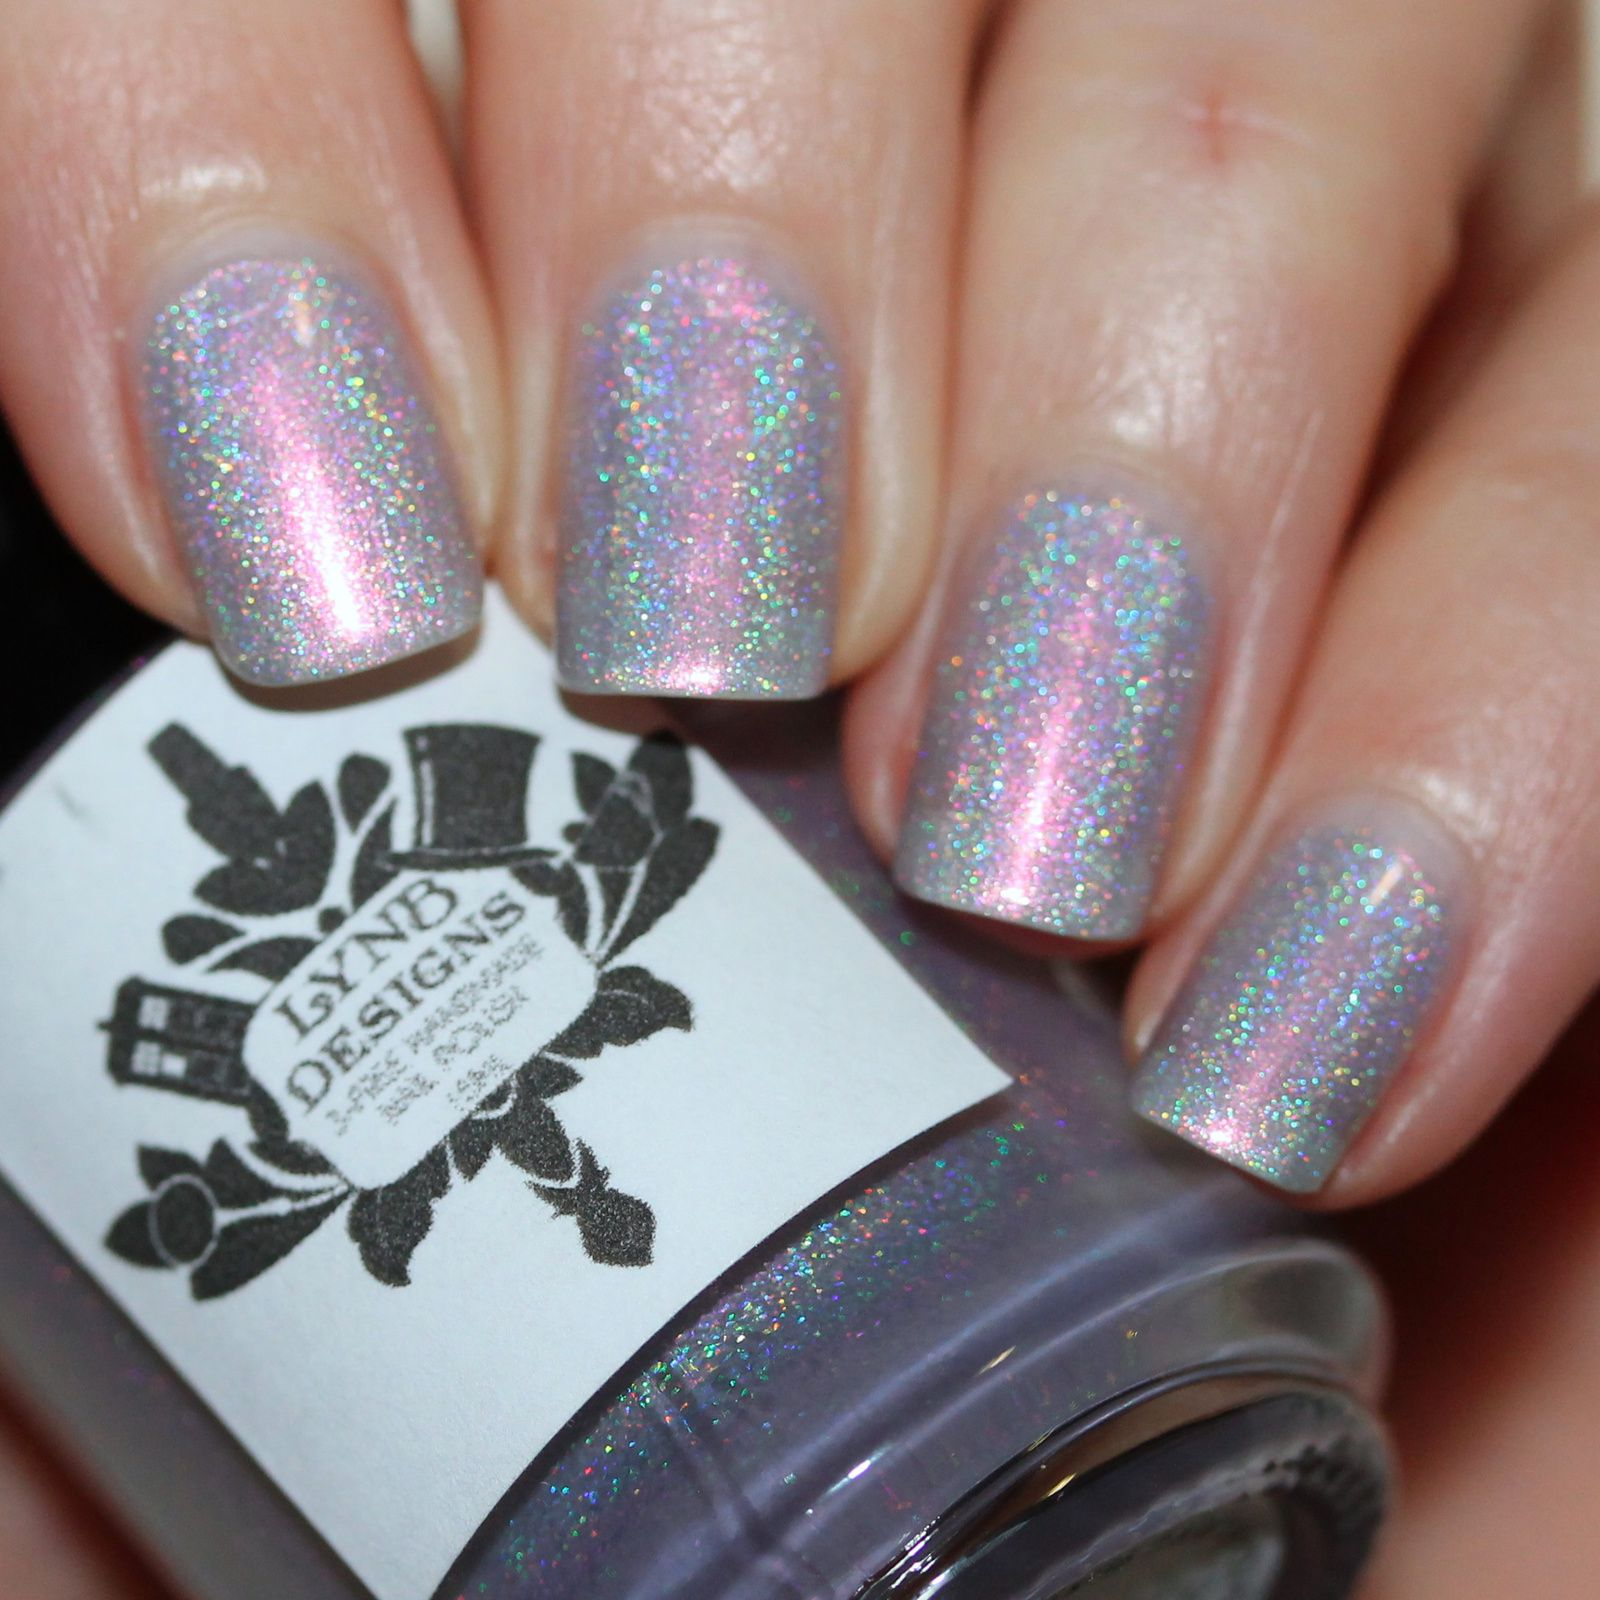 Duri Rejuvacote / LynBDesigns Make Your Life Spectacular / Sally Hansen Miracle Gel Top Coat